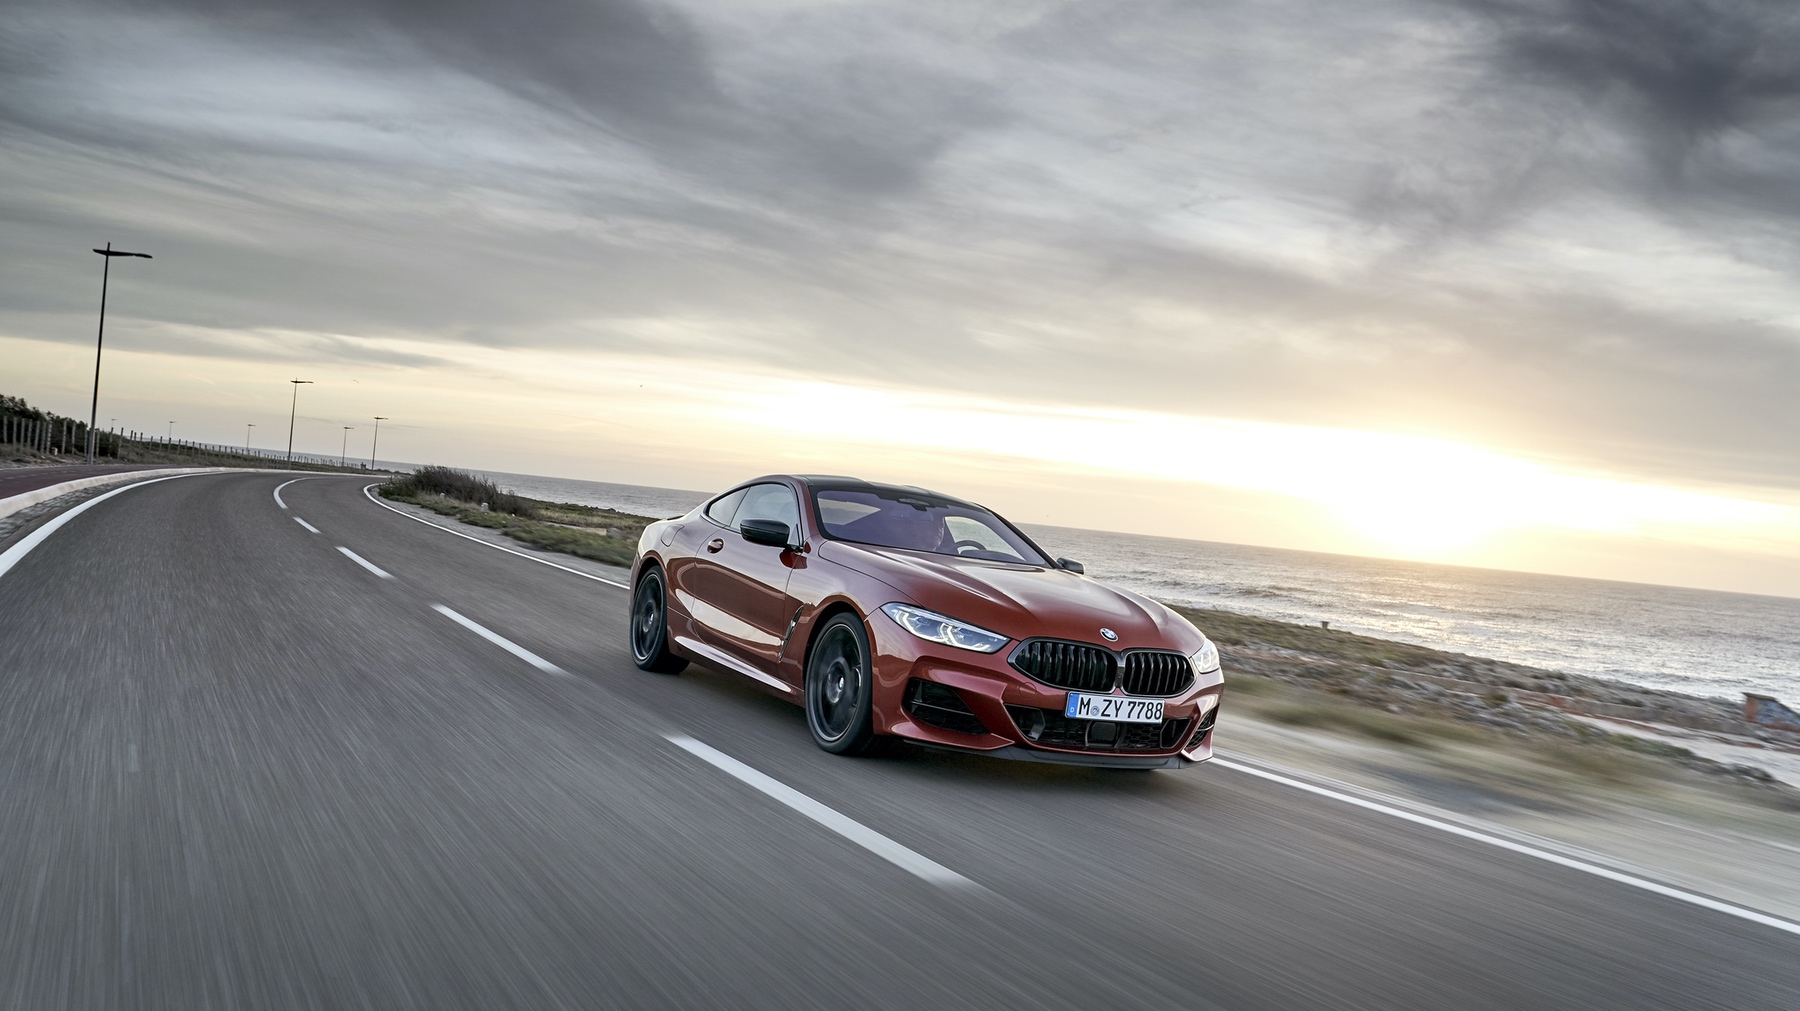 Bmw 8 Series Photo Gallery It S Looking Better The More We See It Bimmerfile